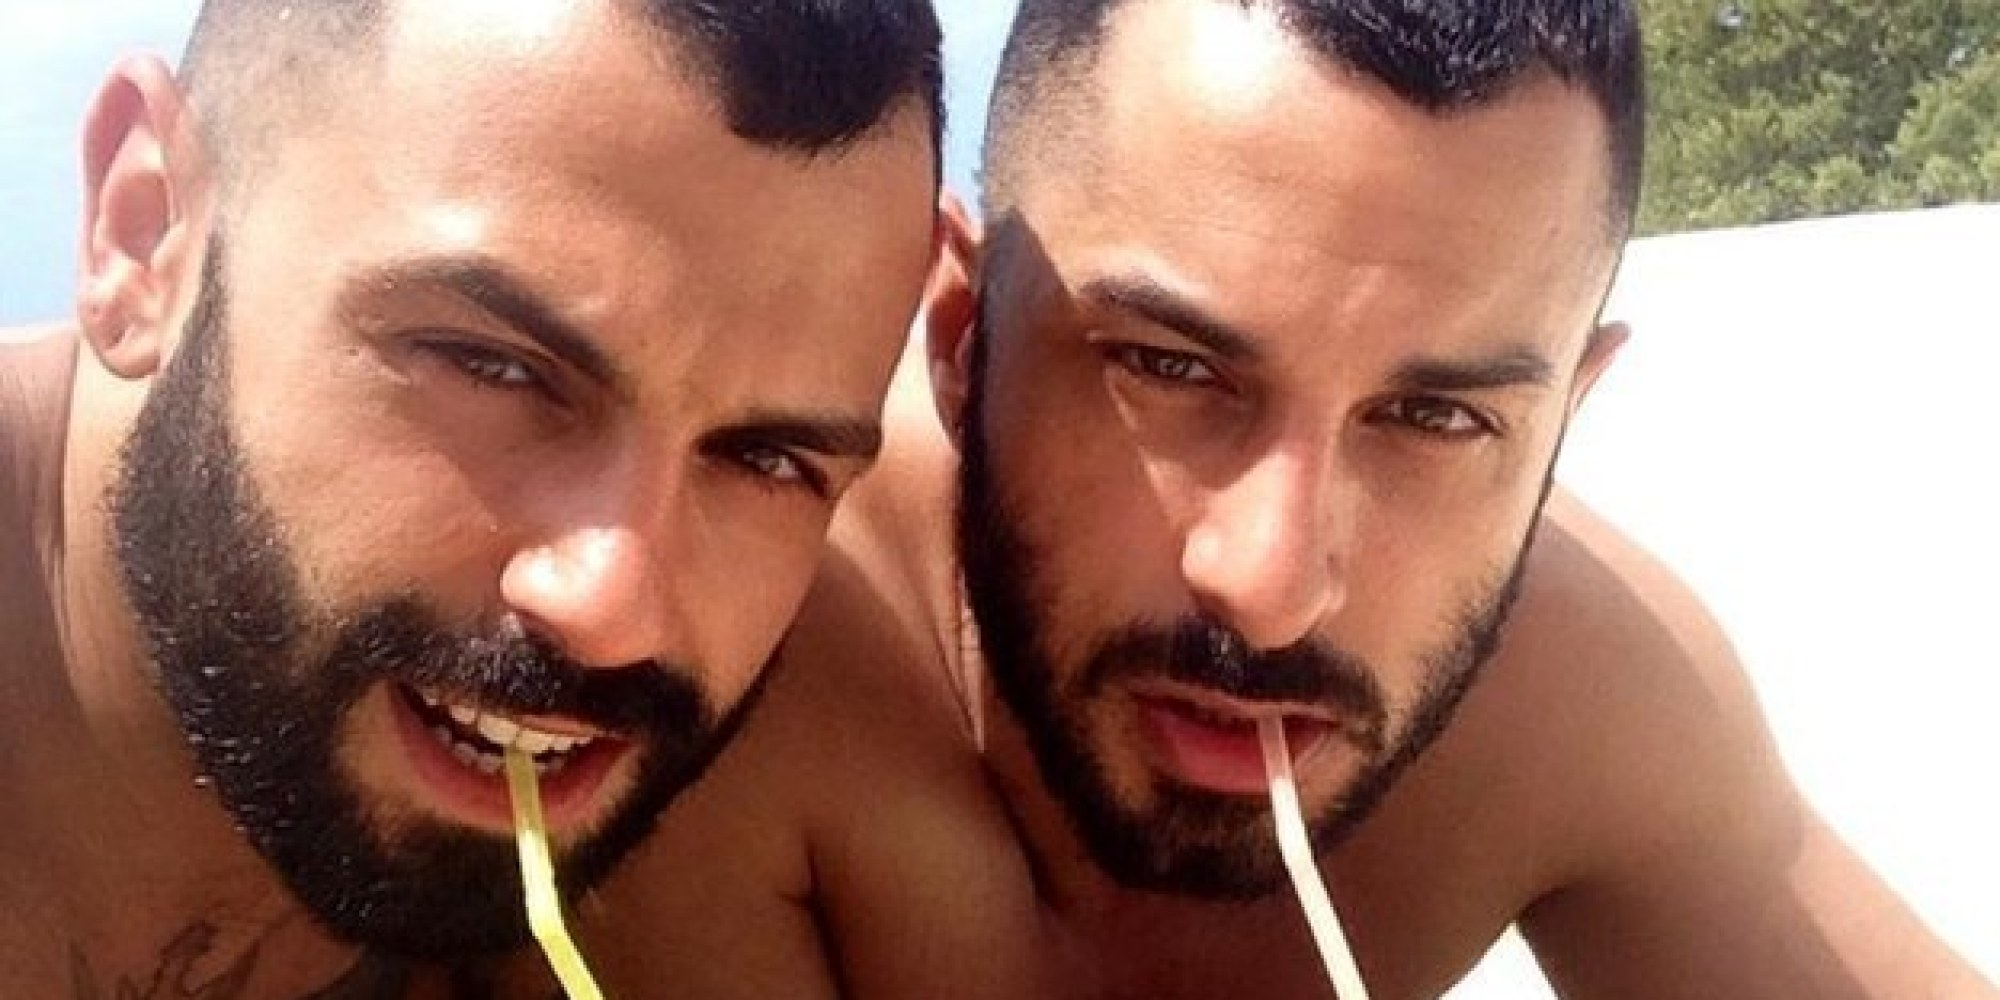 'Boyfriend Twins' Tumblr Documents Lookalike Gay Boyfriends